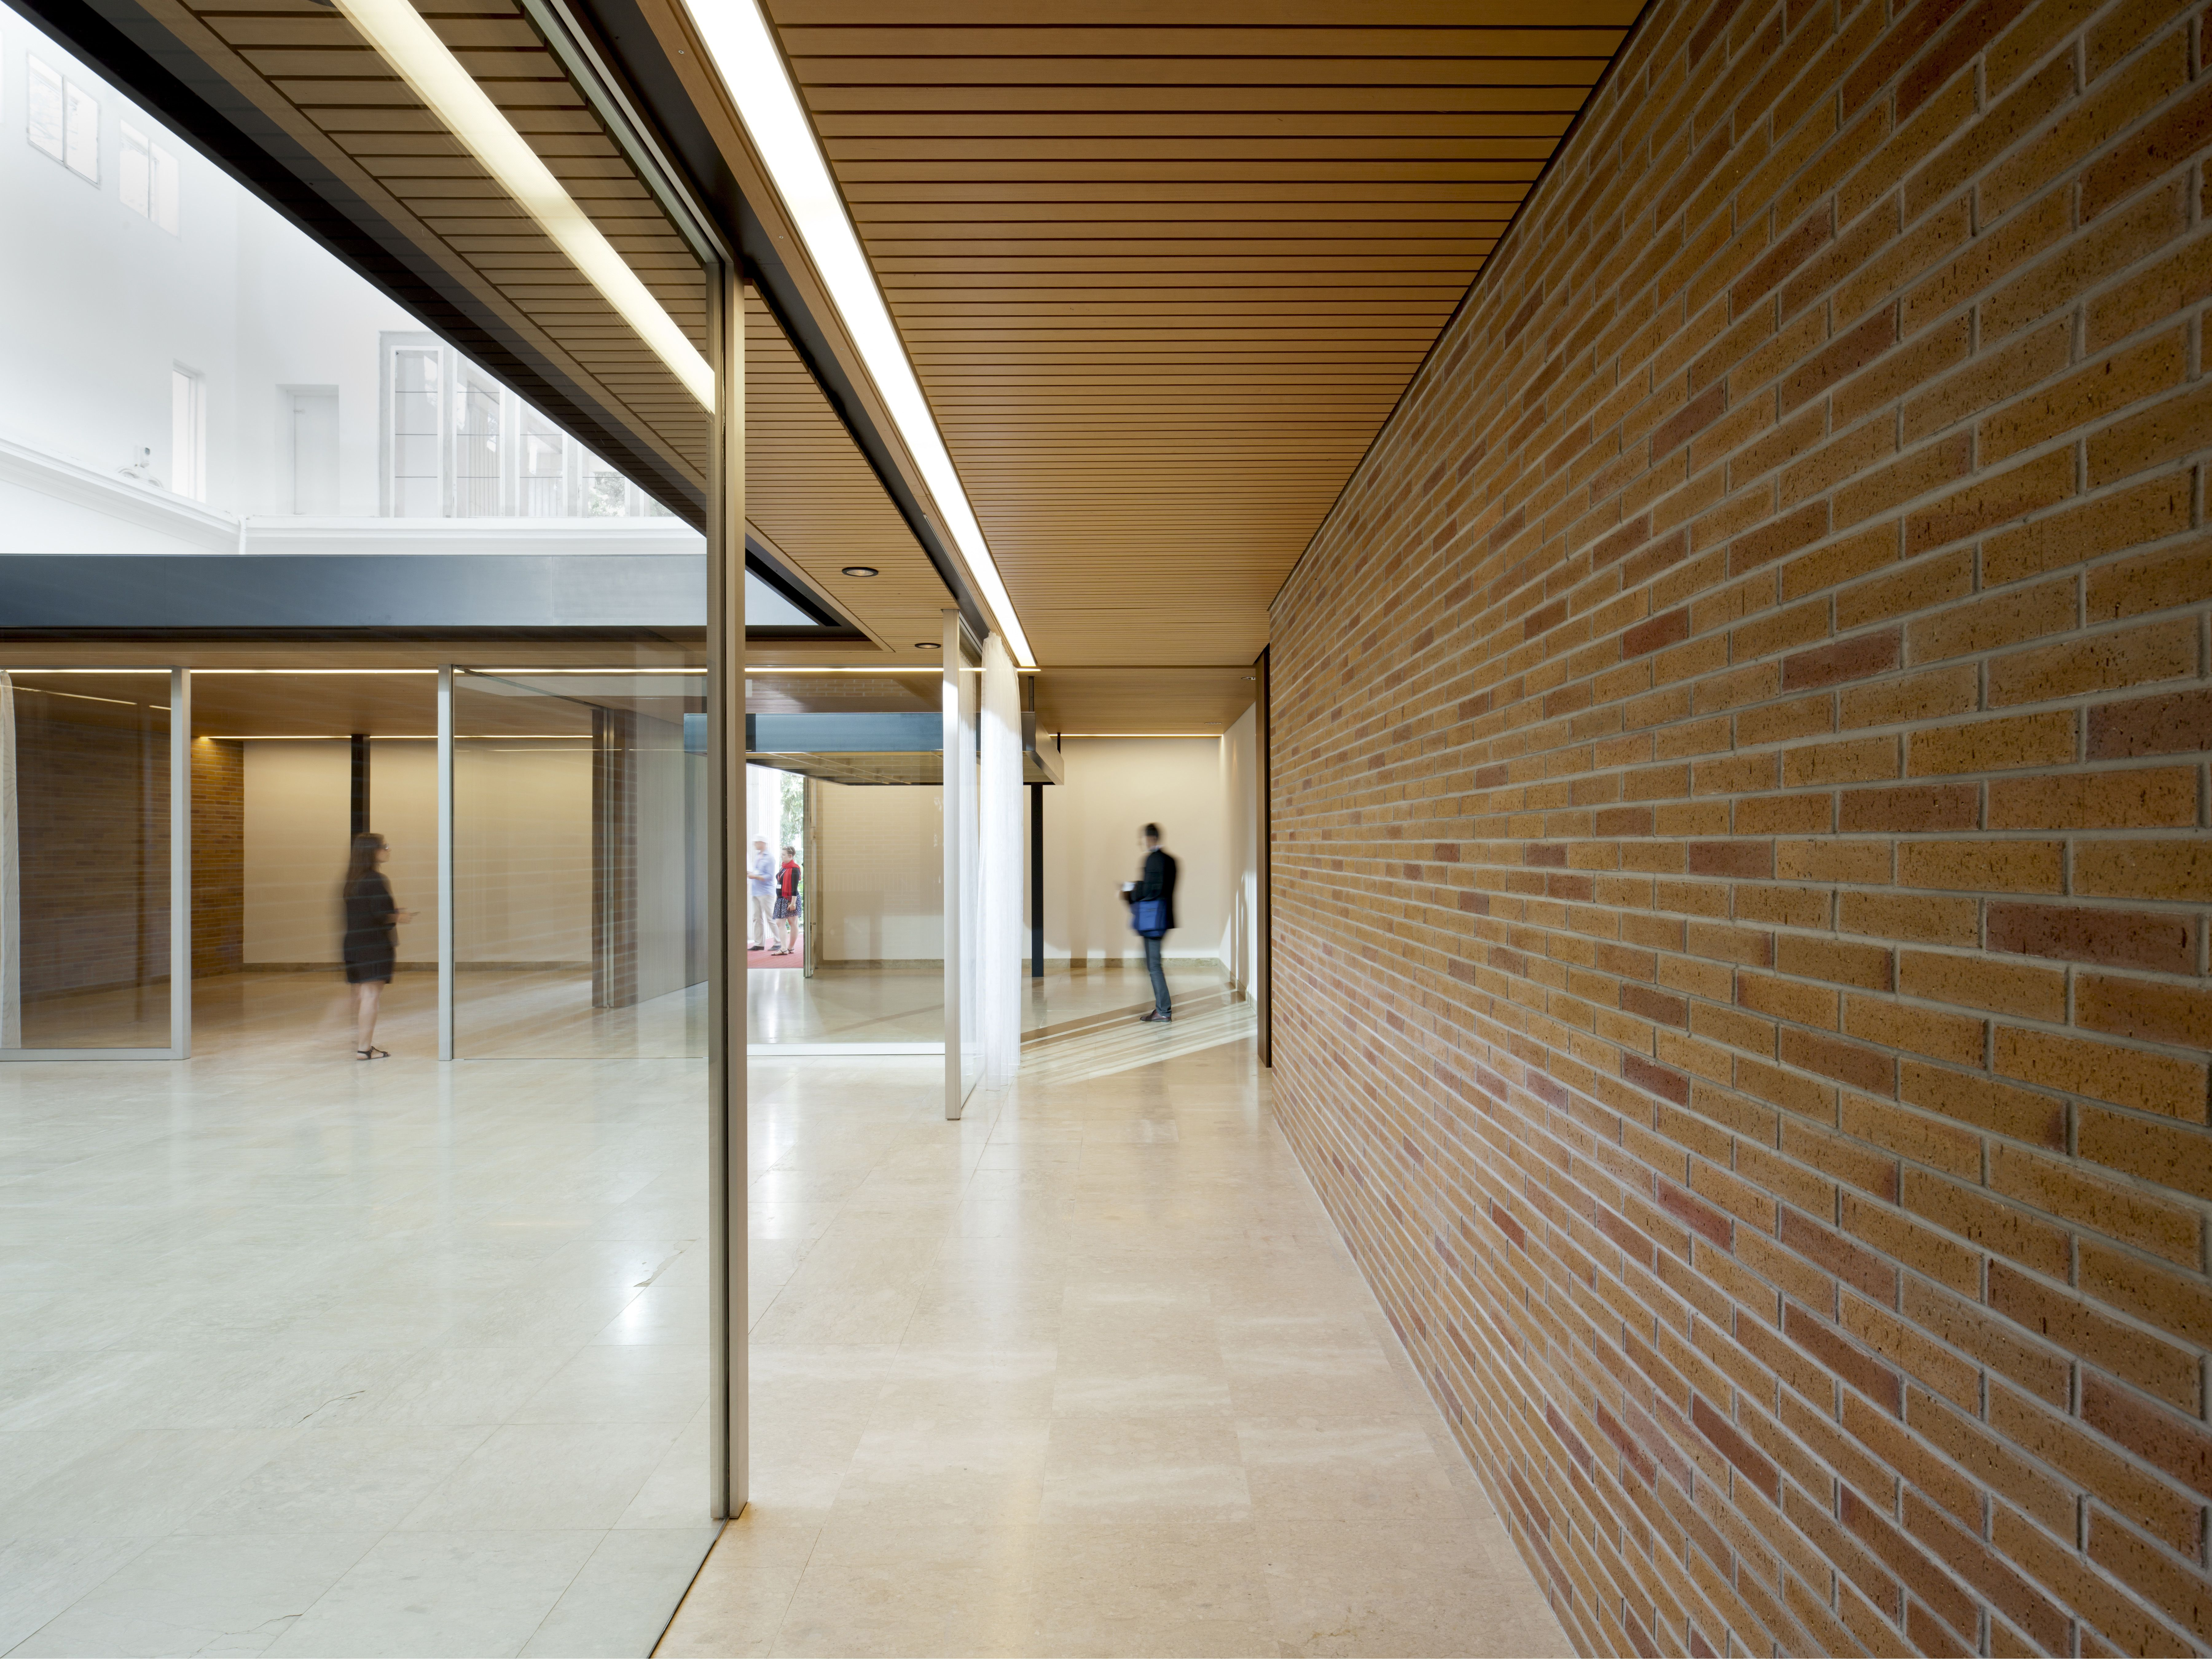 An interior view of a modern building, the 2014 Venice Biennale